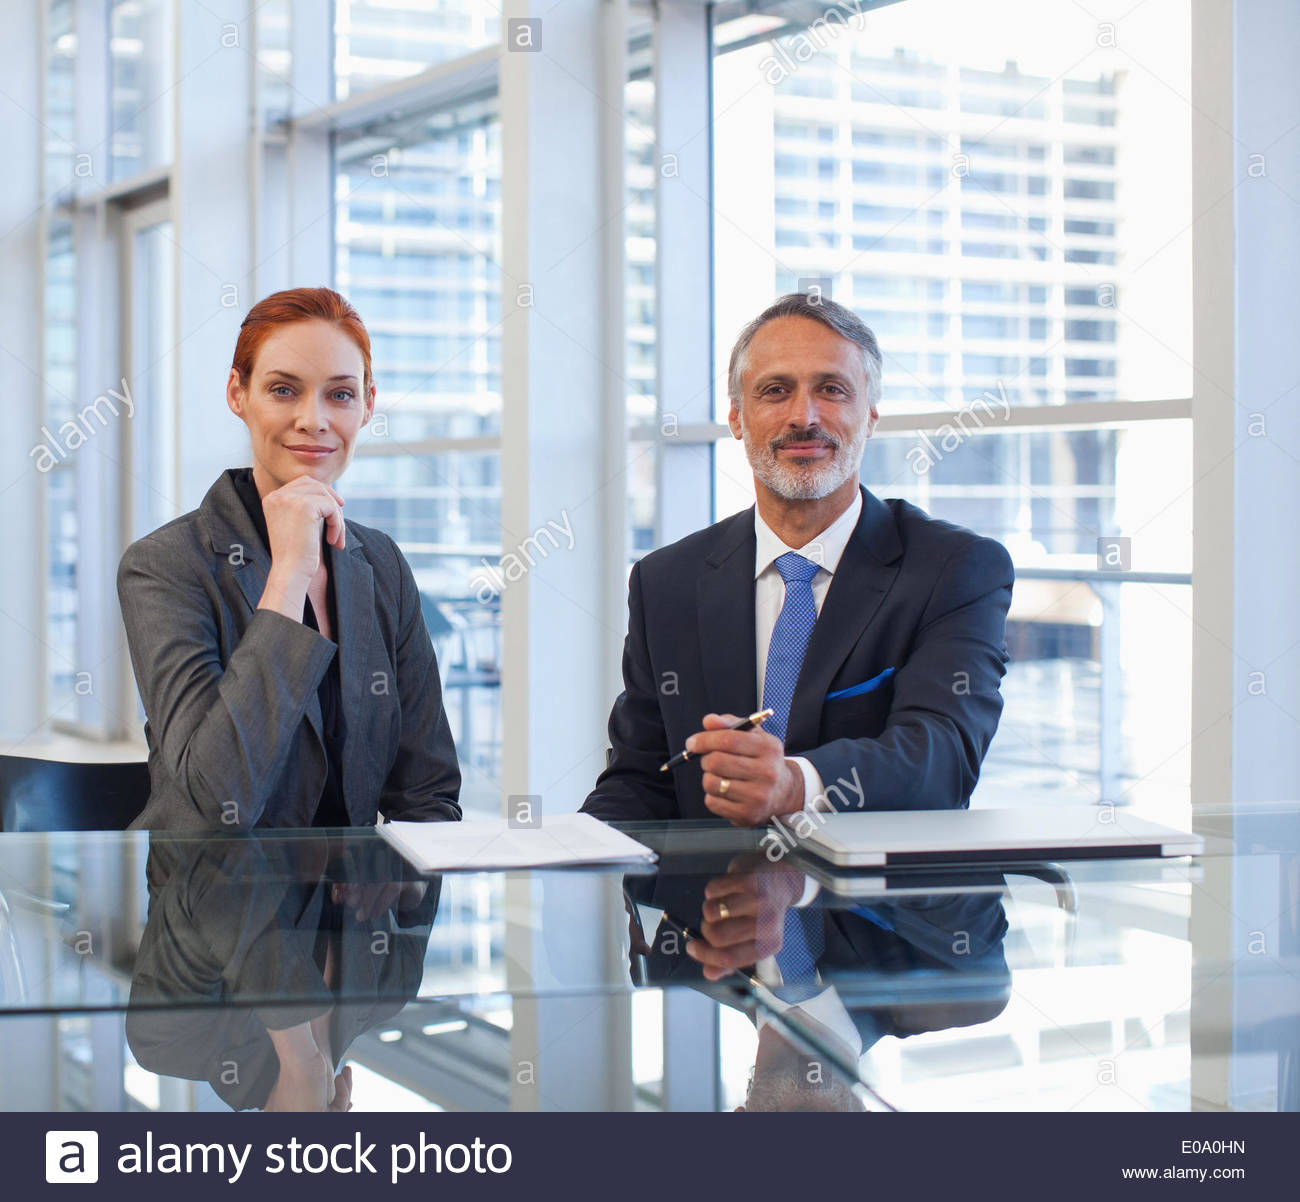 Business people sitting at table - Stock Image